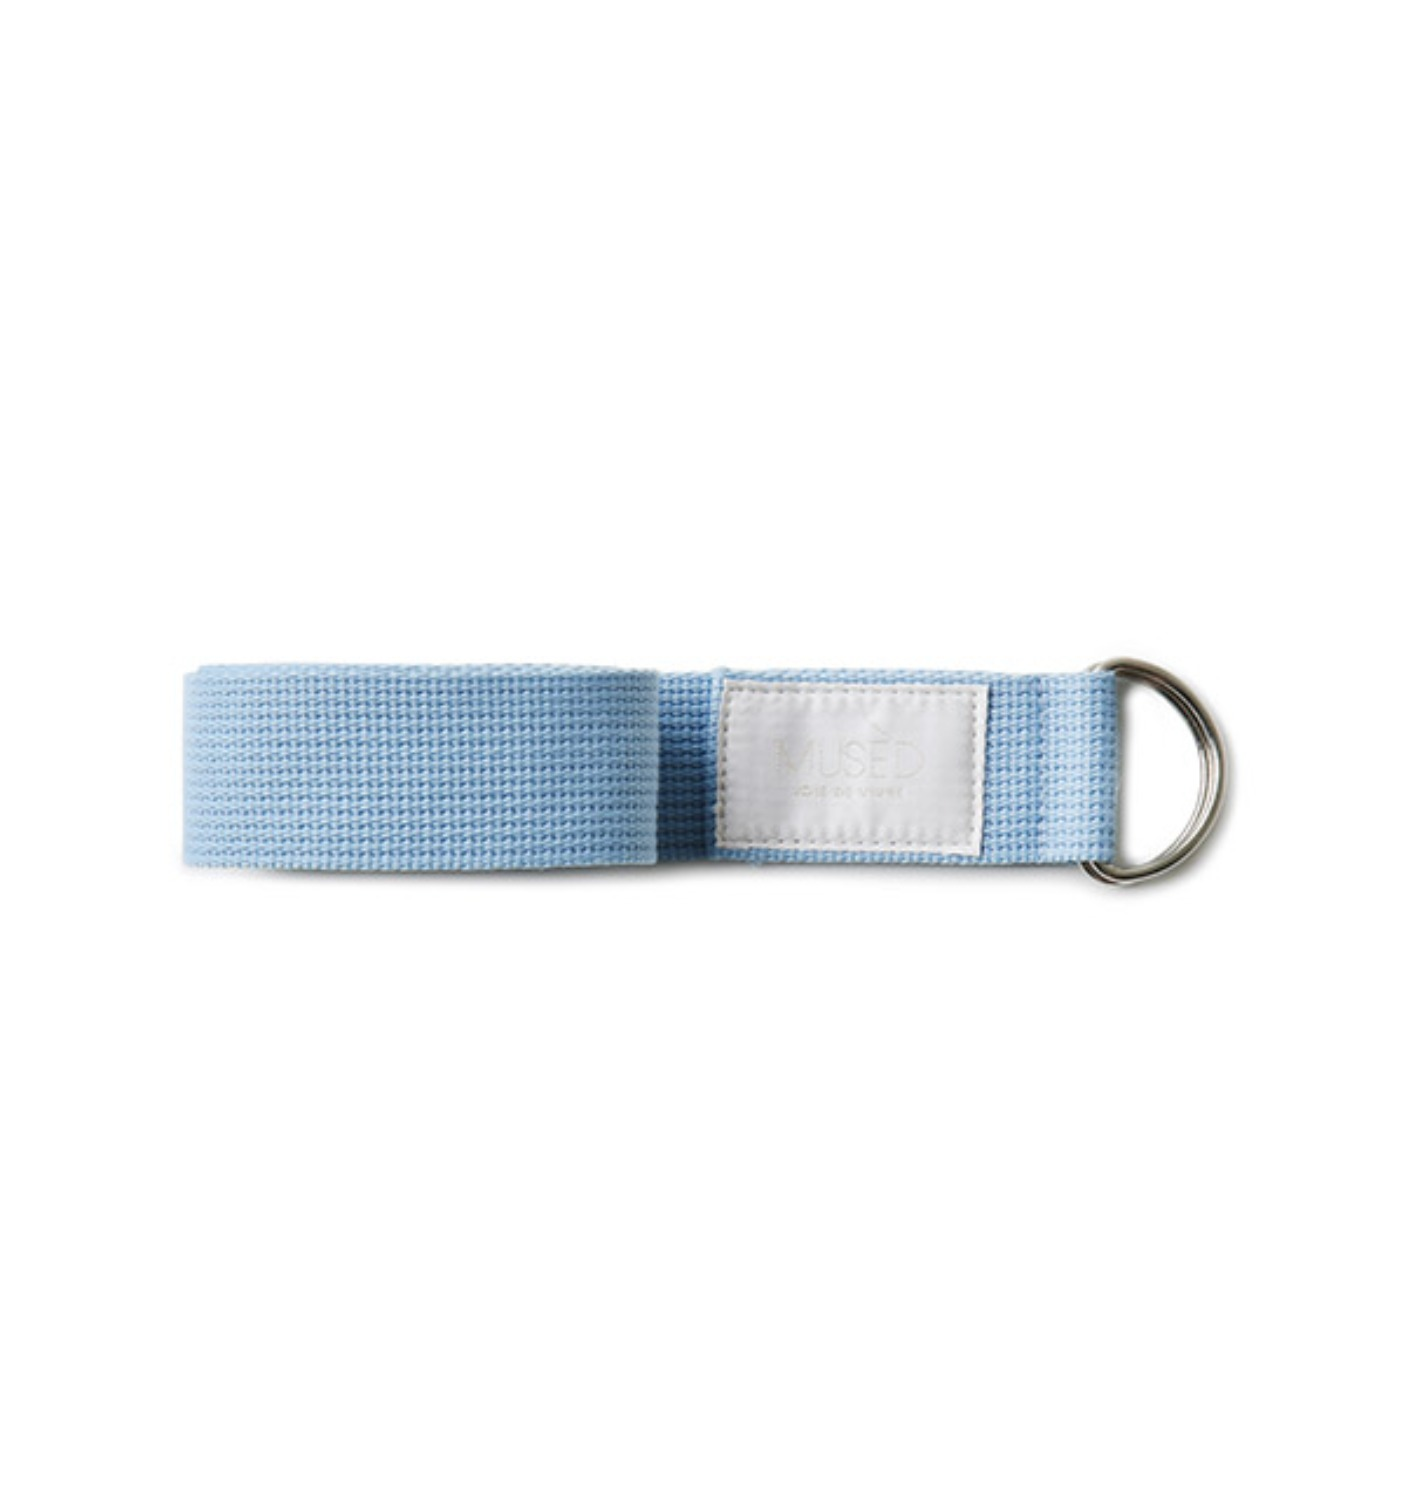 MUSED WEAVING BELT LIGHT SKYBLUE